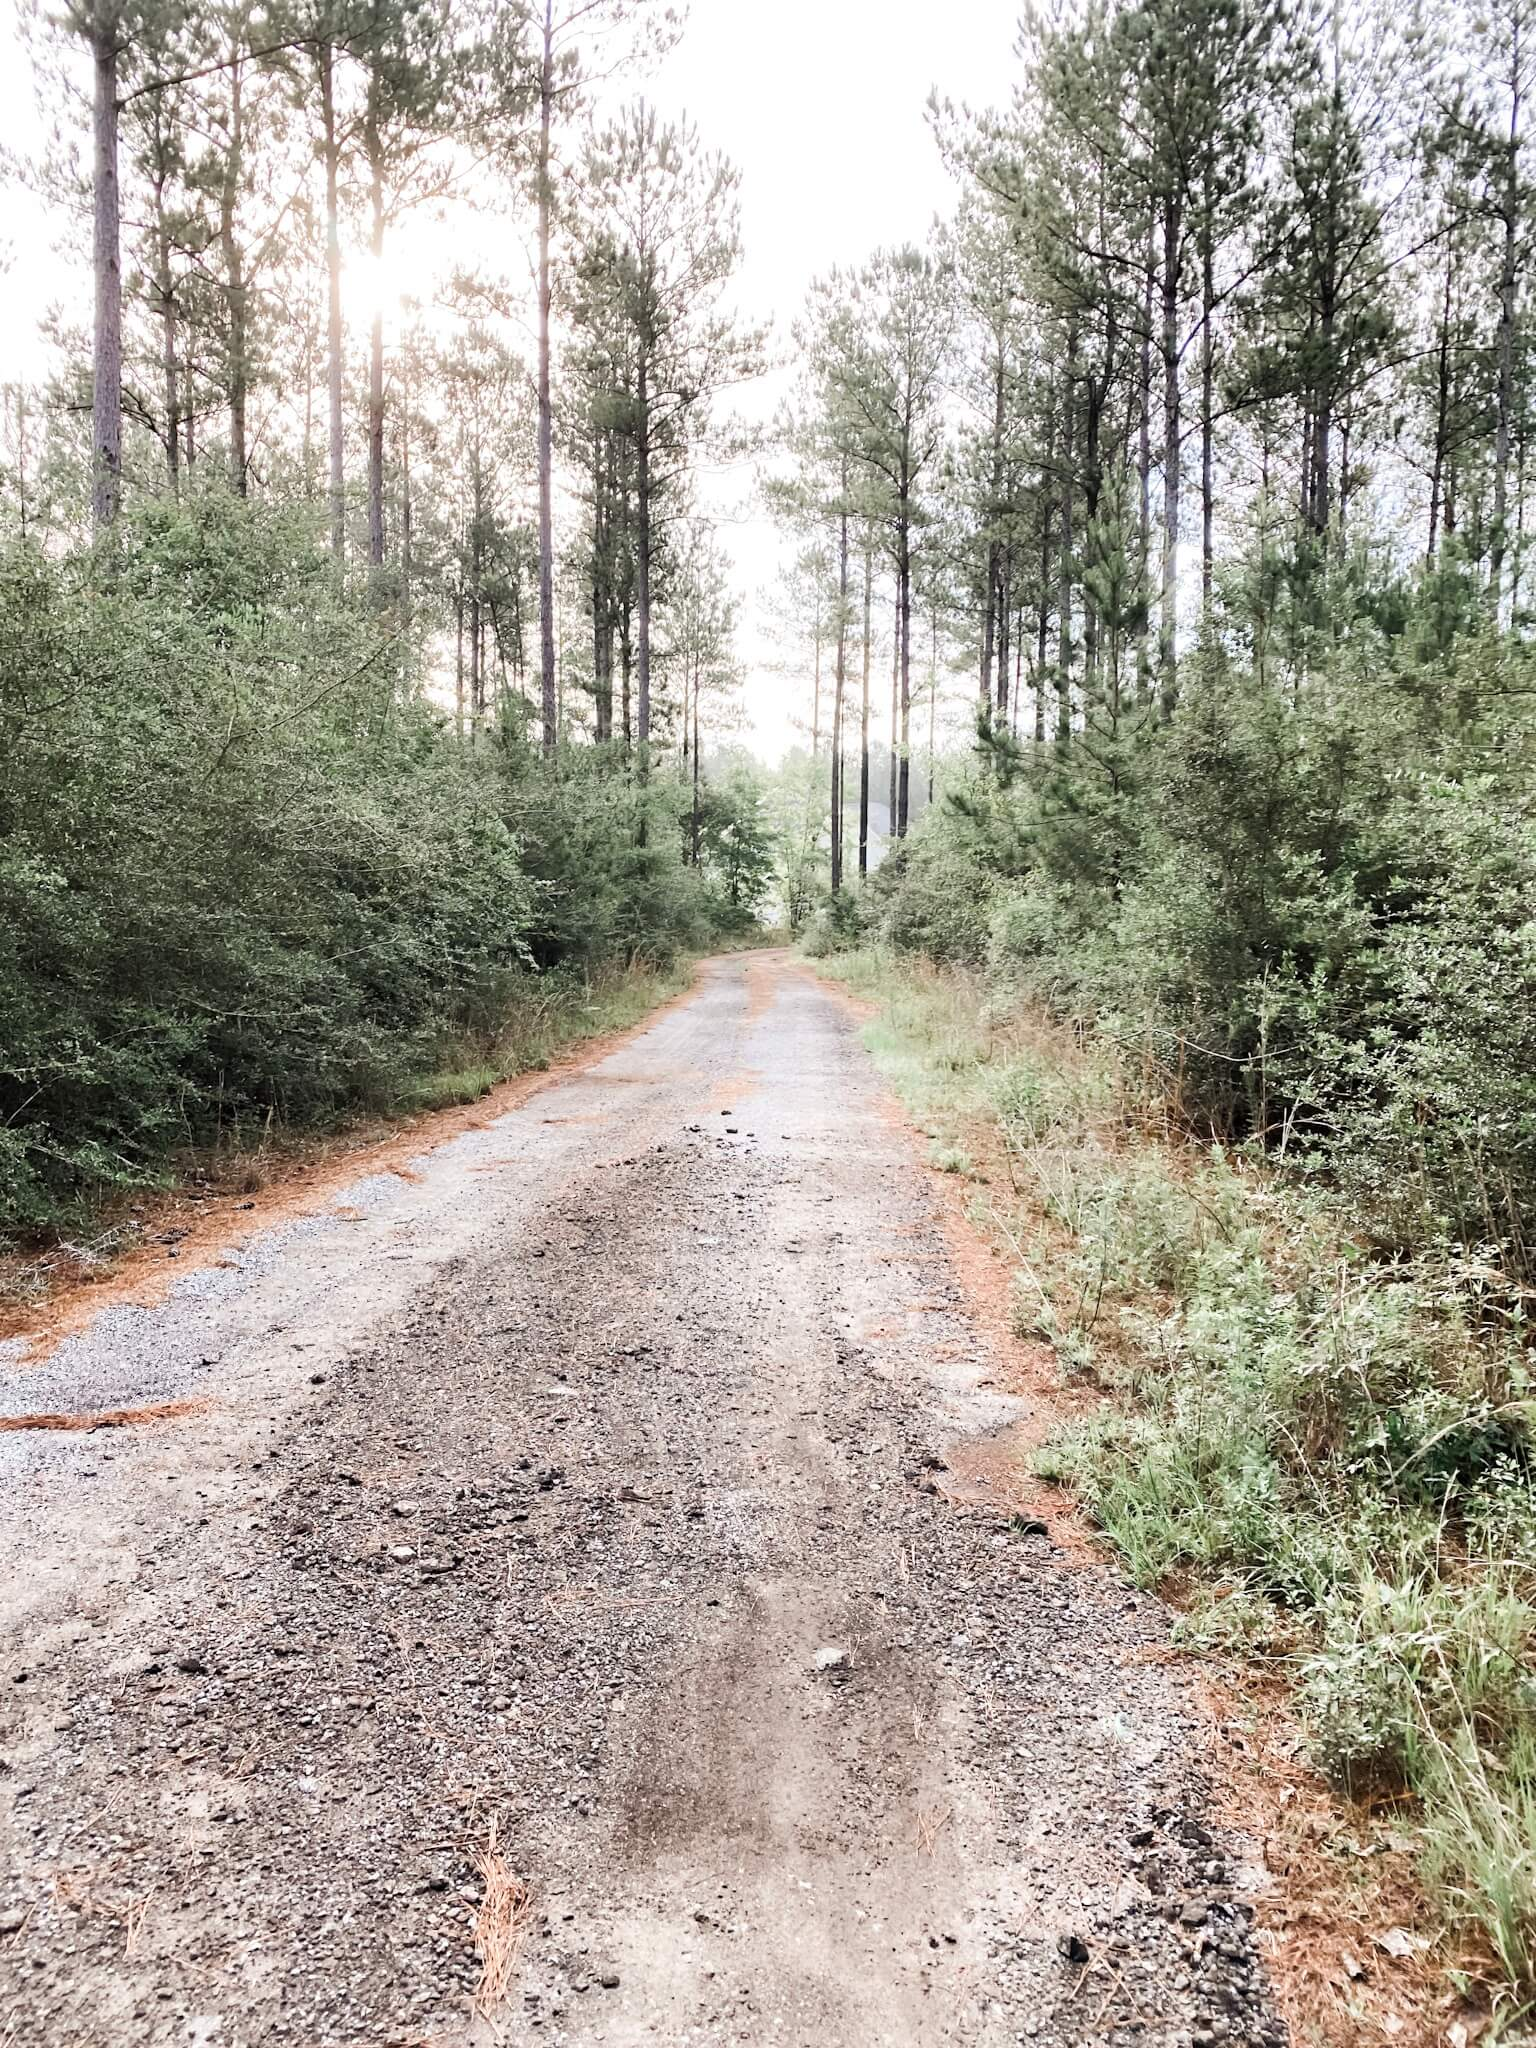 Gravel Driveway with trees on both sides. Taking back your health one step at a time.